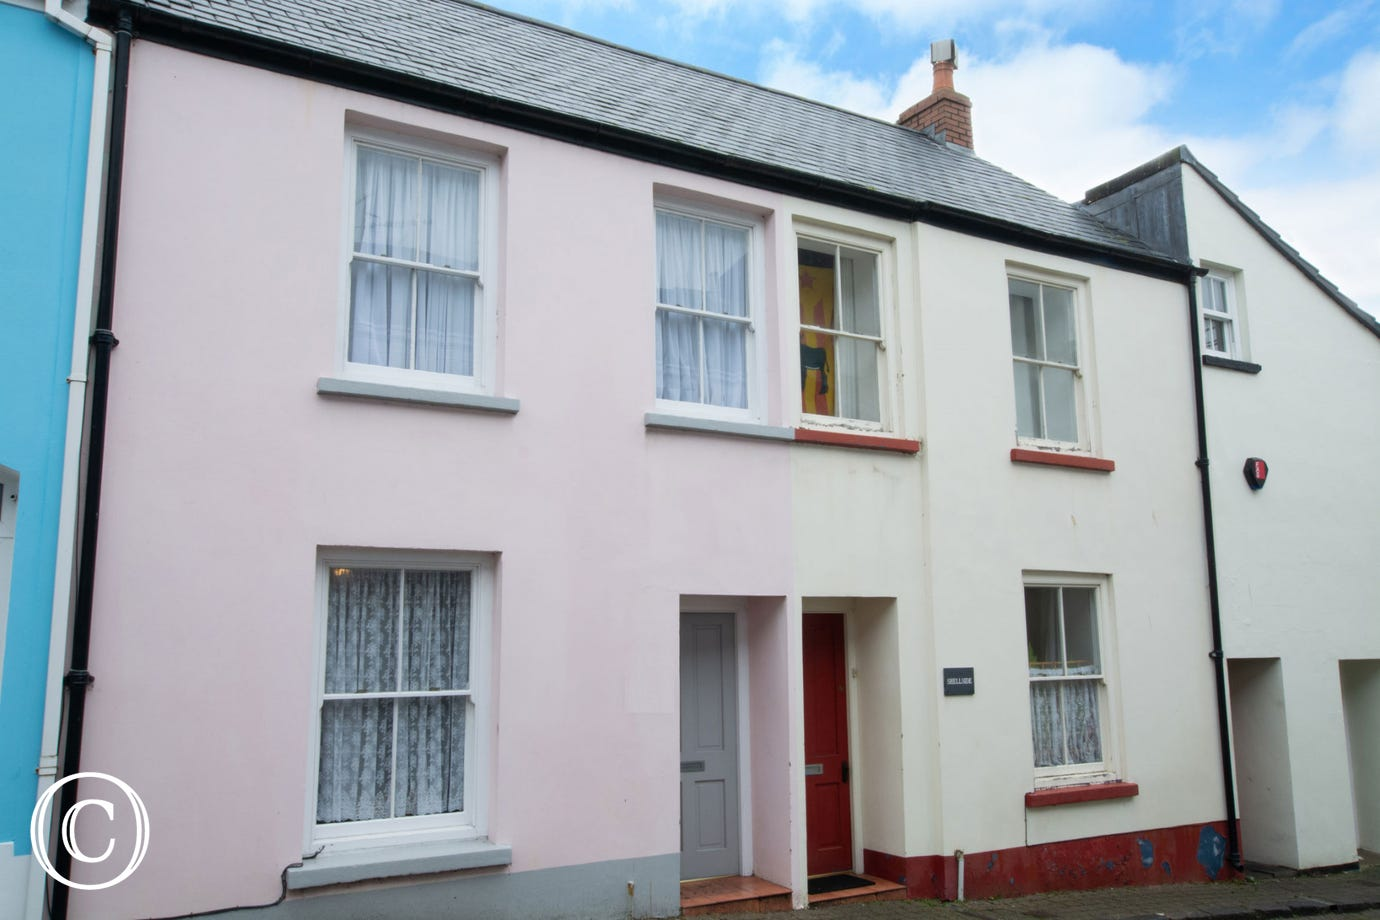 Tenby Retreat Holiday Cottage